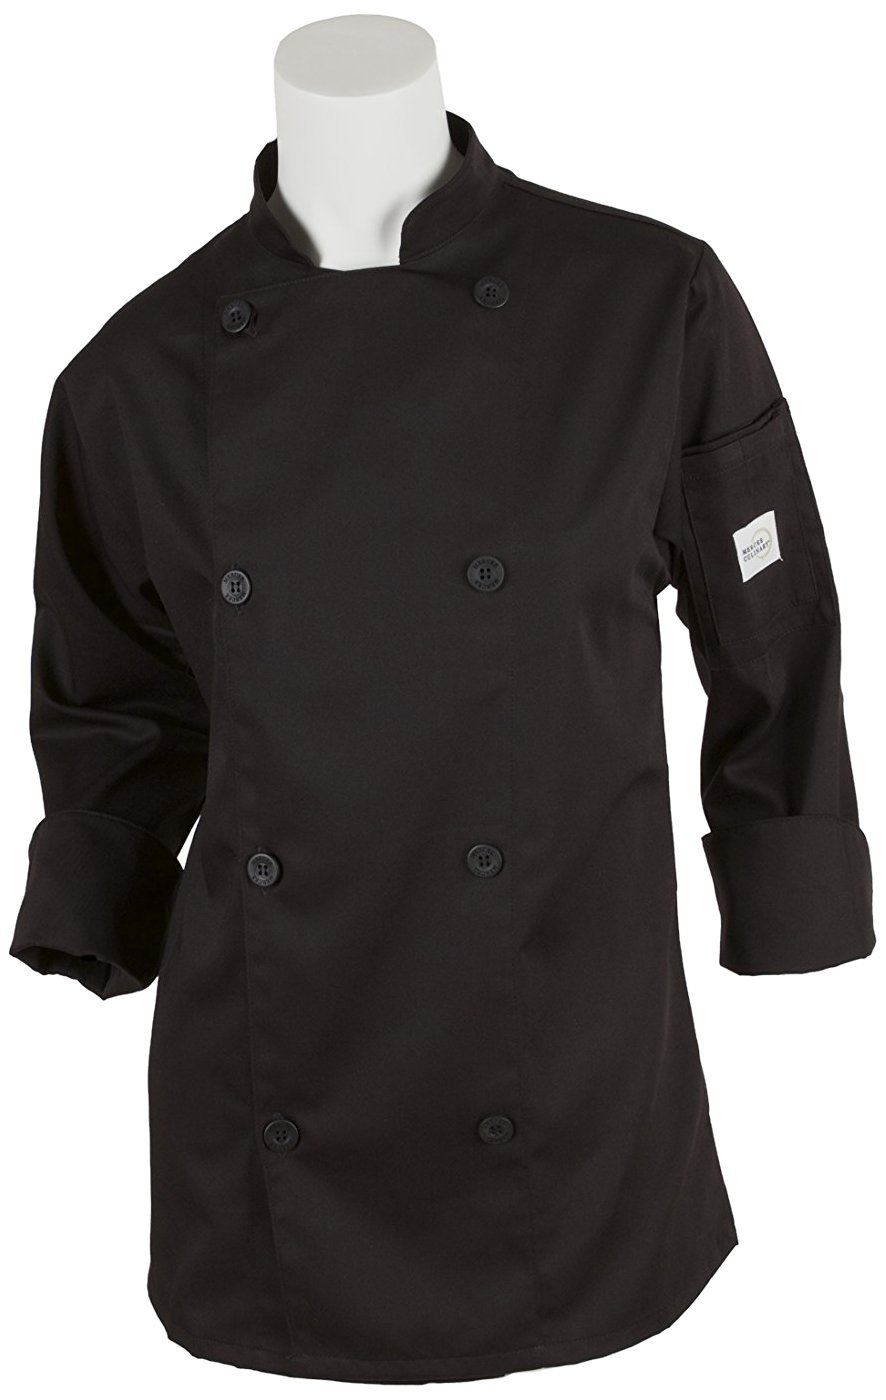 Mercer Culinary M61030BK1X Genesis Women's Chef Jacket with Traditional Buttons, X-Large, Black